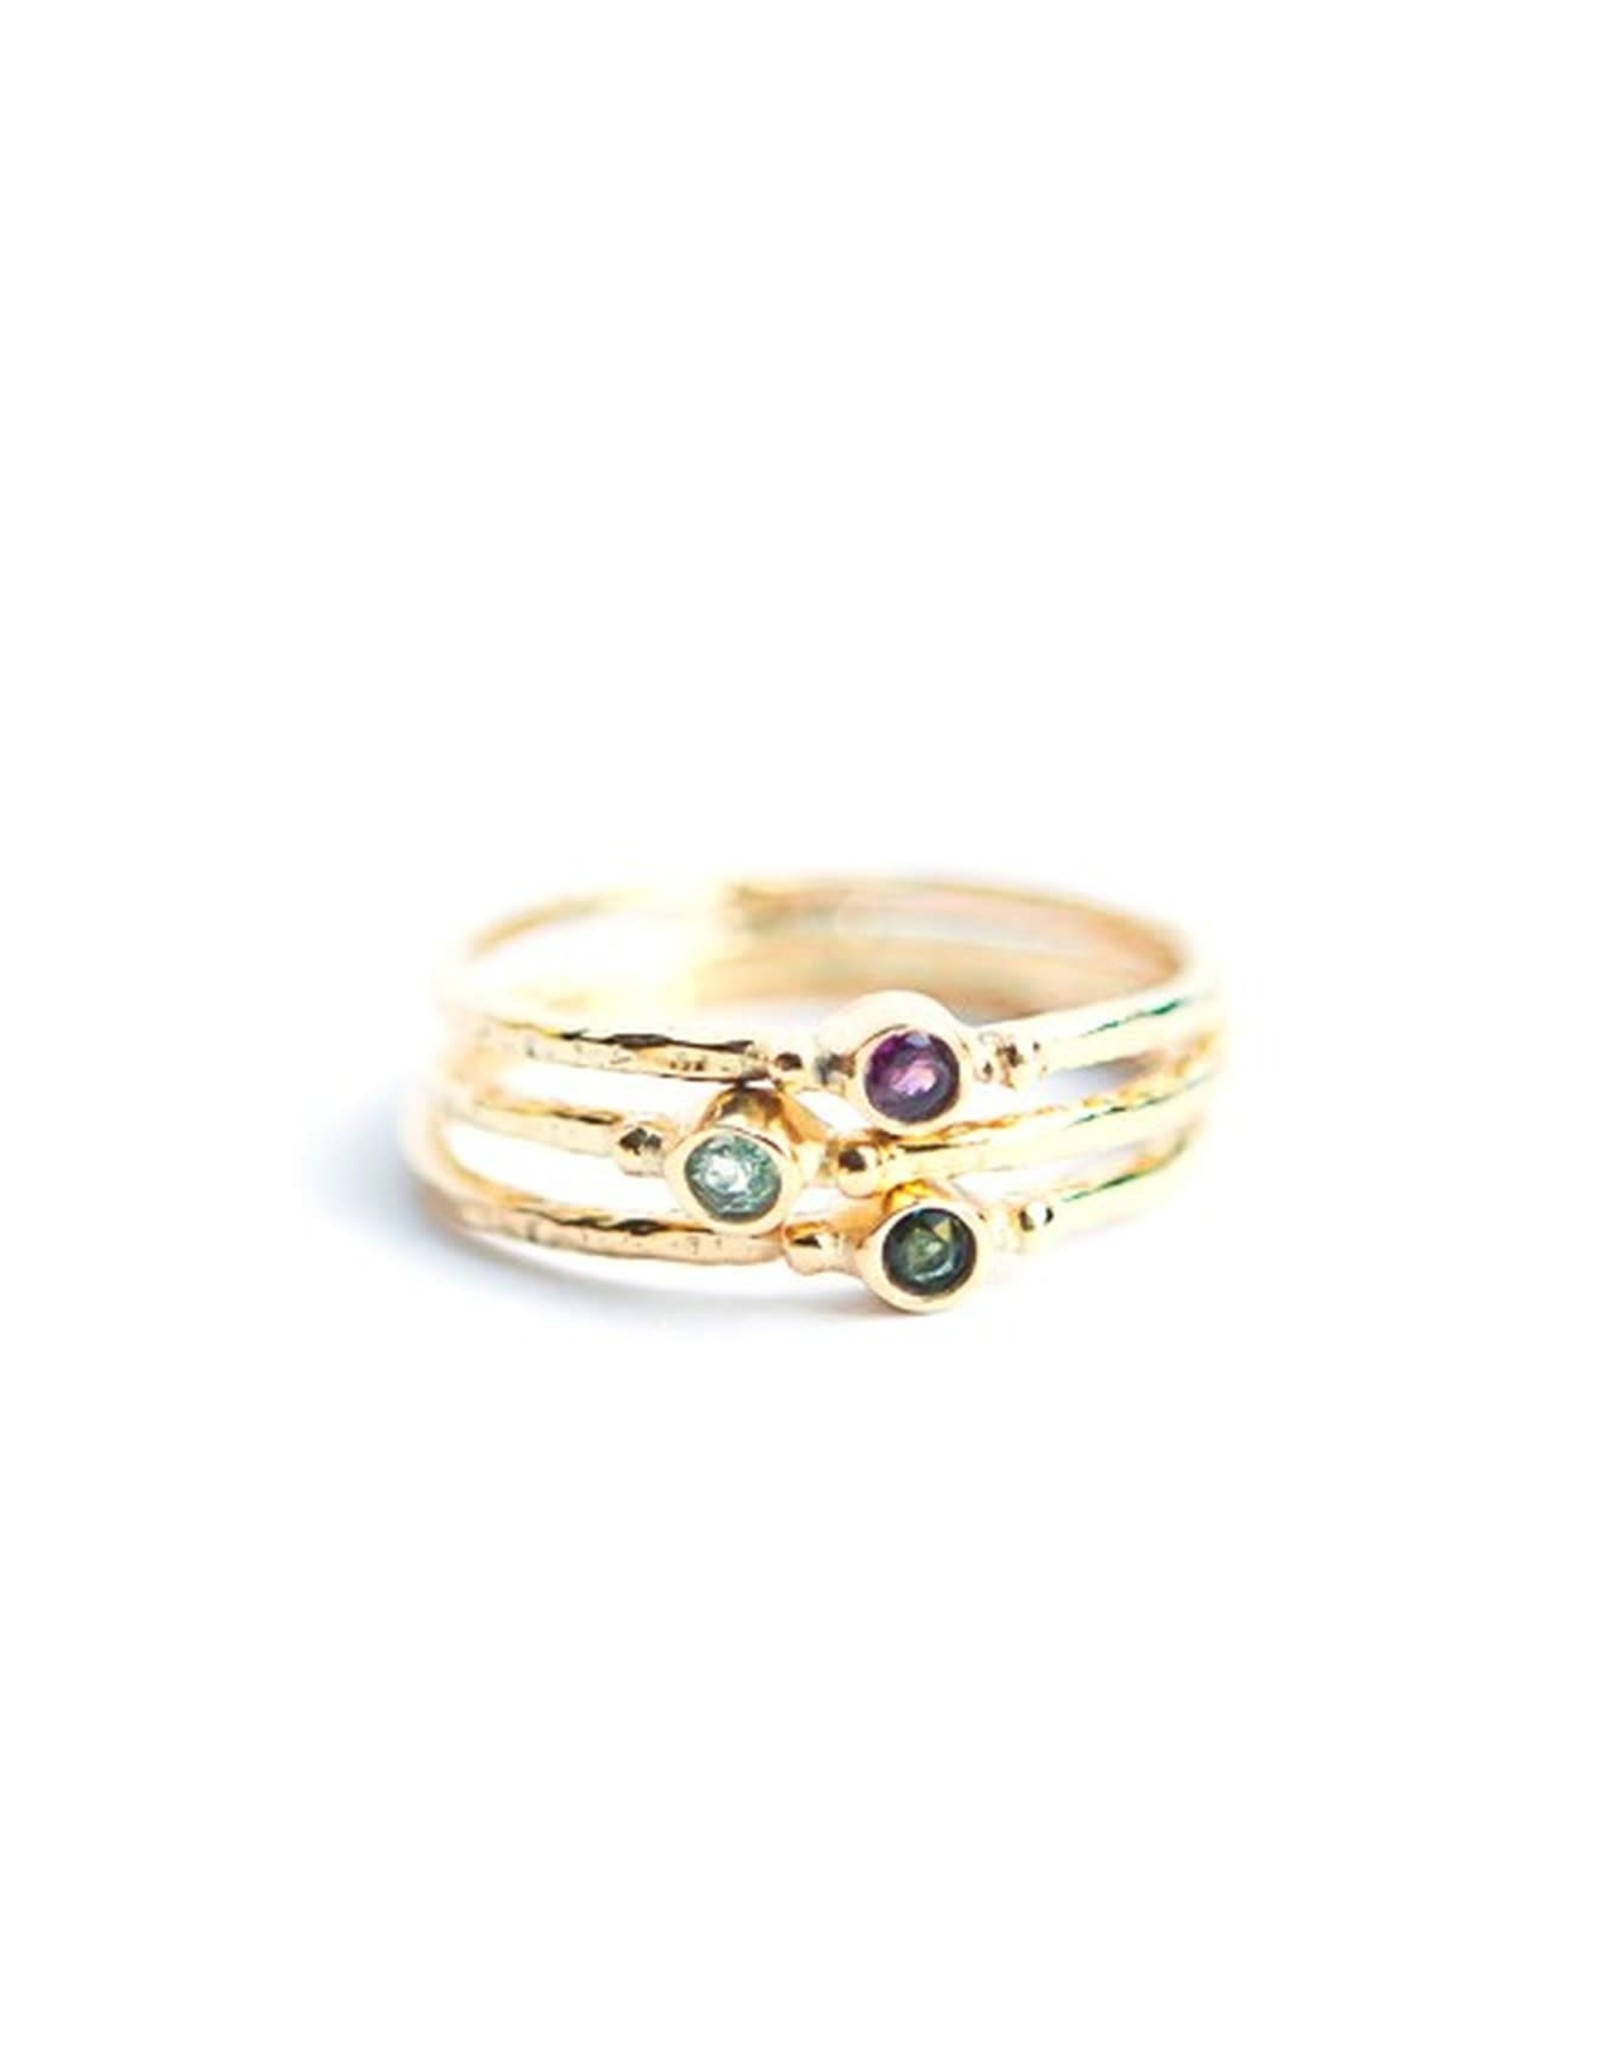 Stacking Sterling Plated 14 kt Ring, Tourmaline